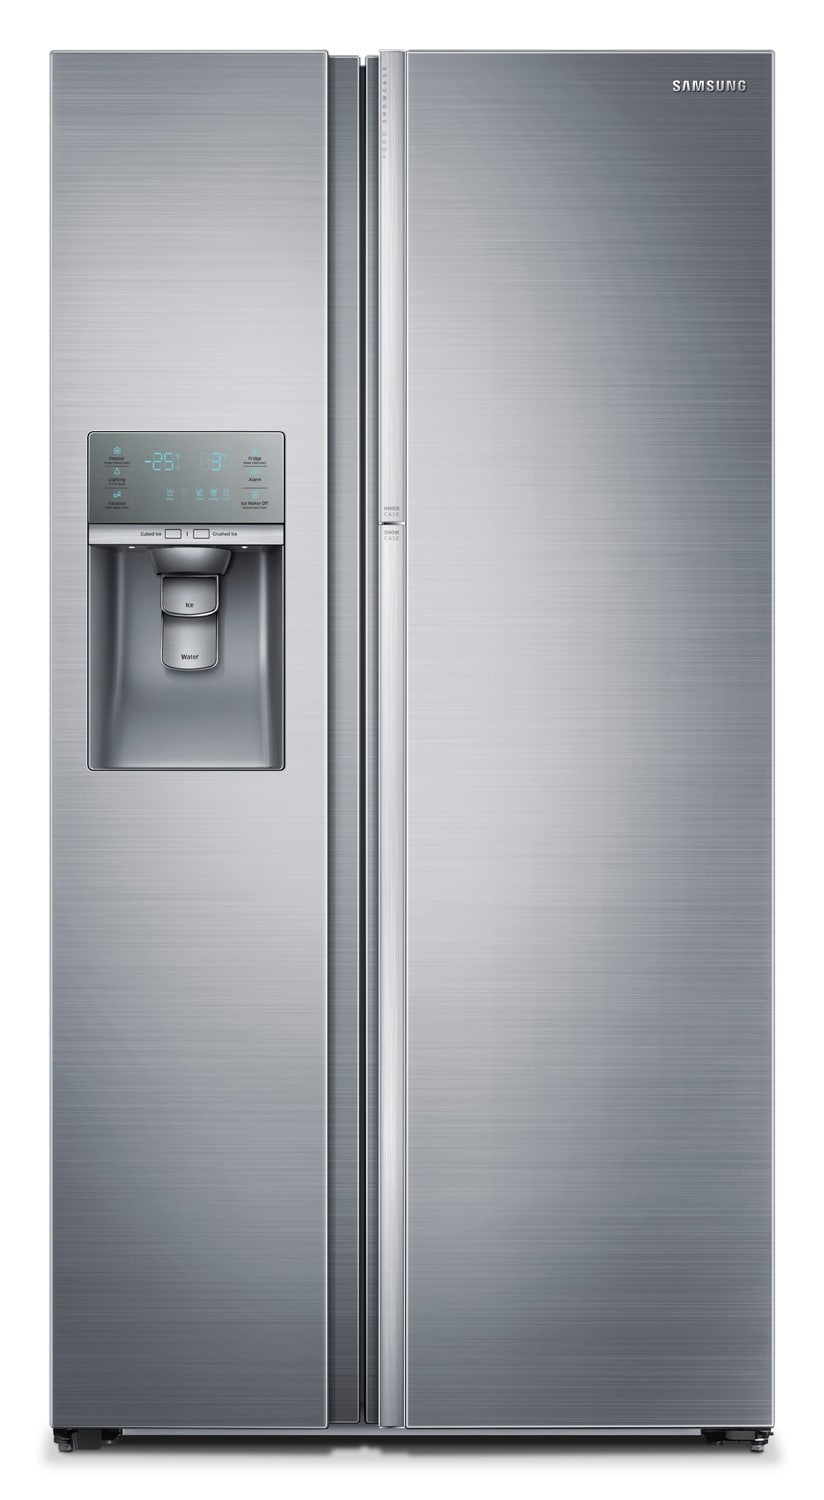 Refrigerators and Freezers - Samsung Stainless Steel Side-by-Side Refrigerator (22 Cu. Ft.) - RH22H9010SR/AA